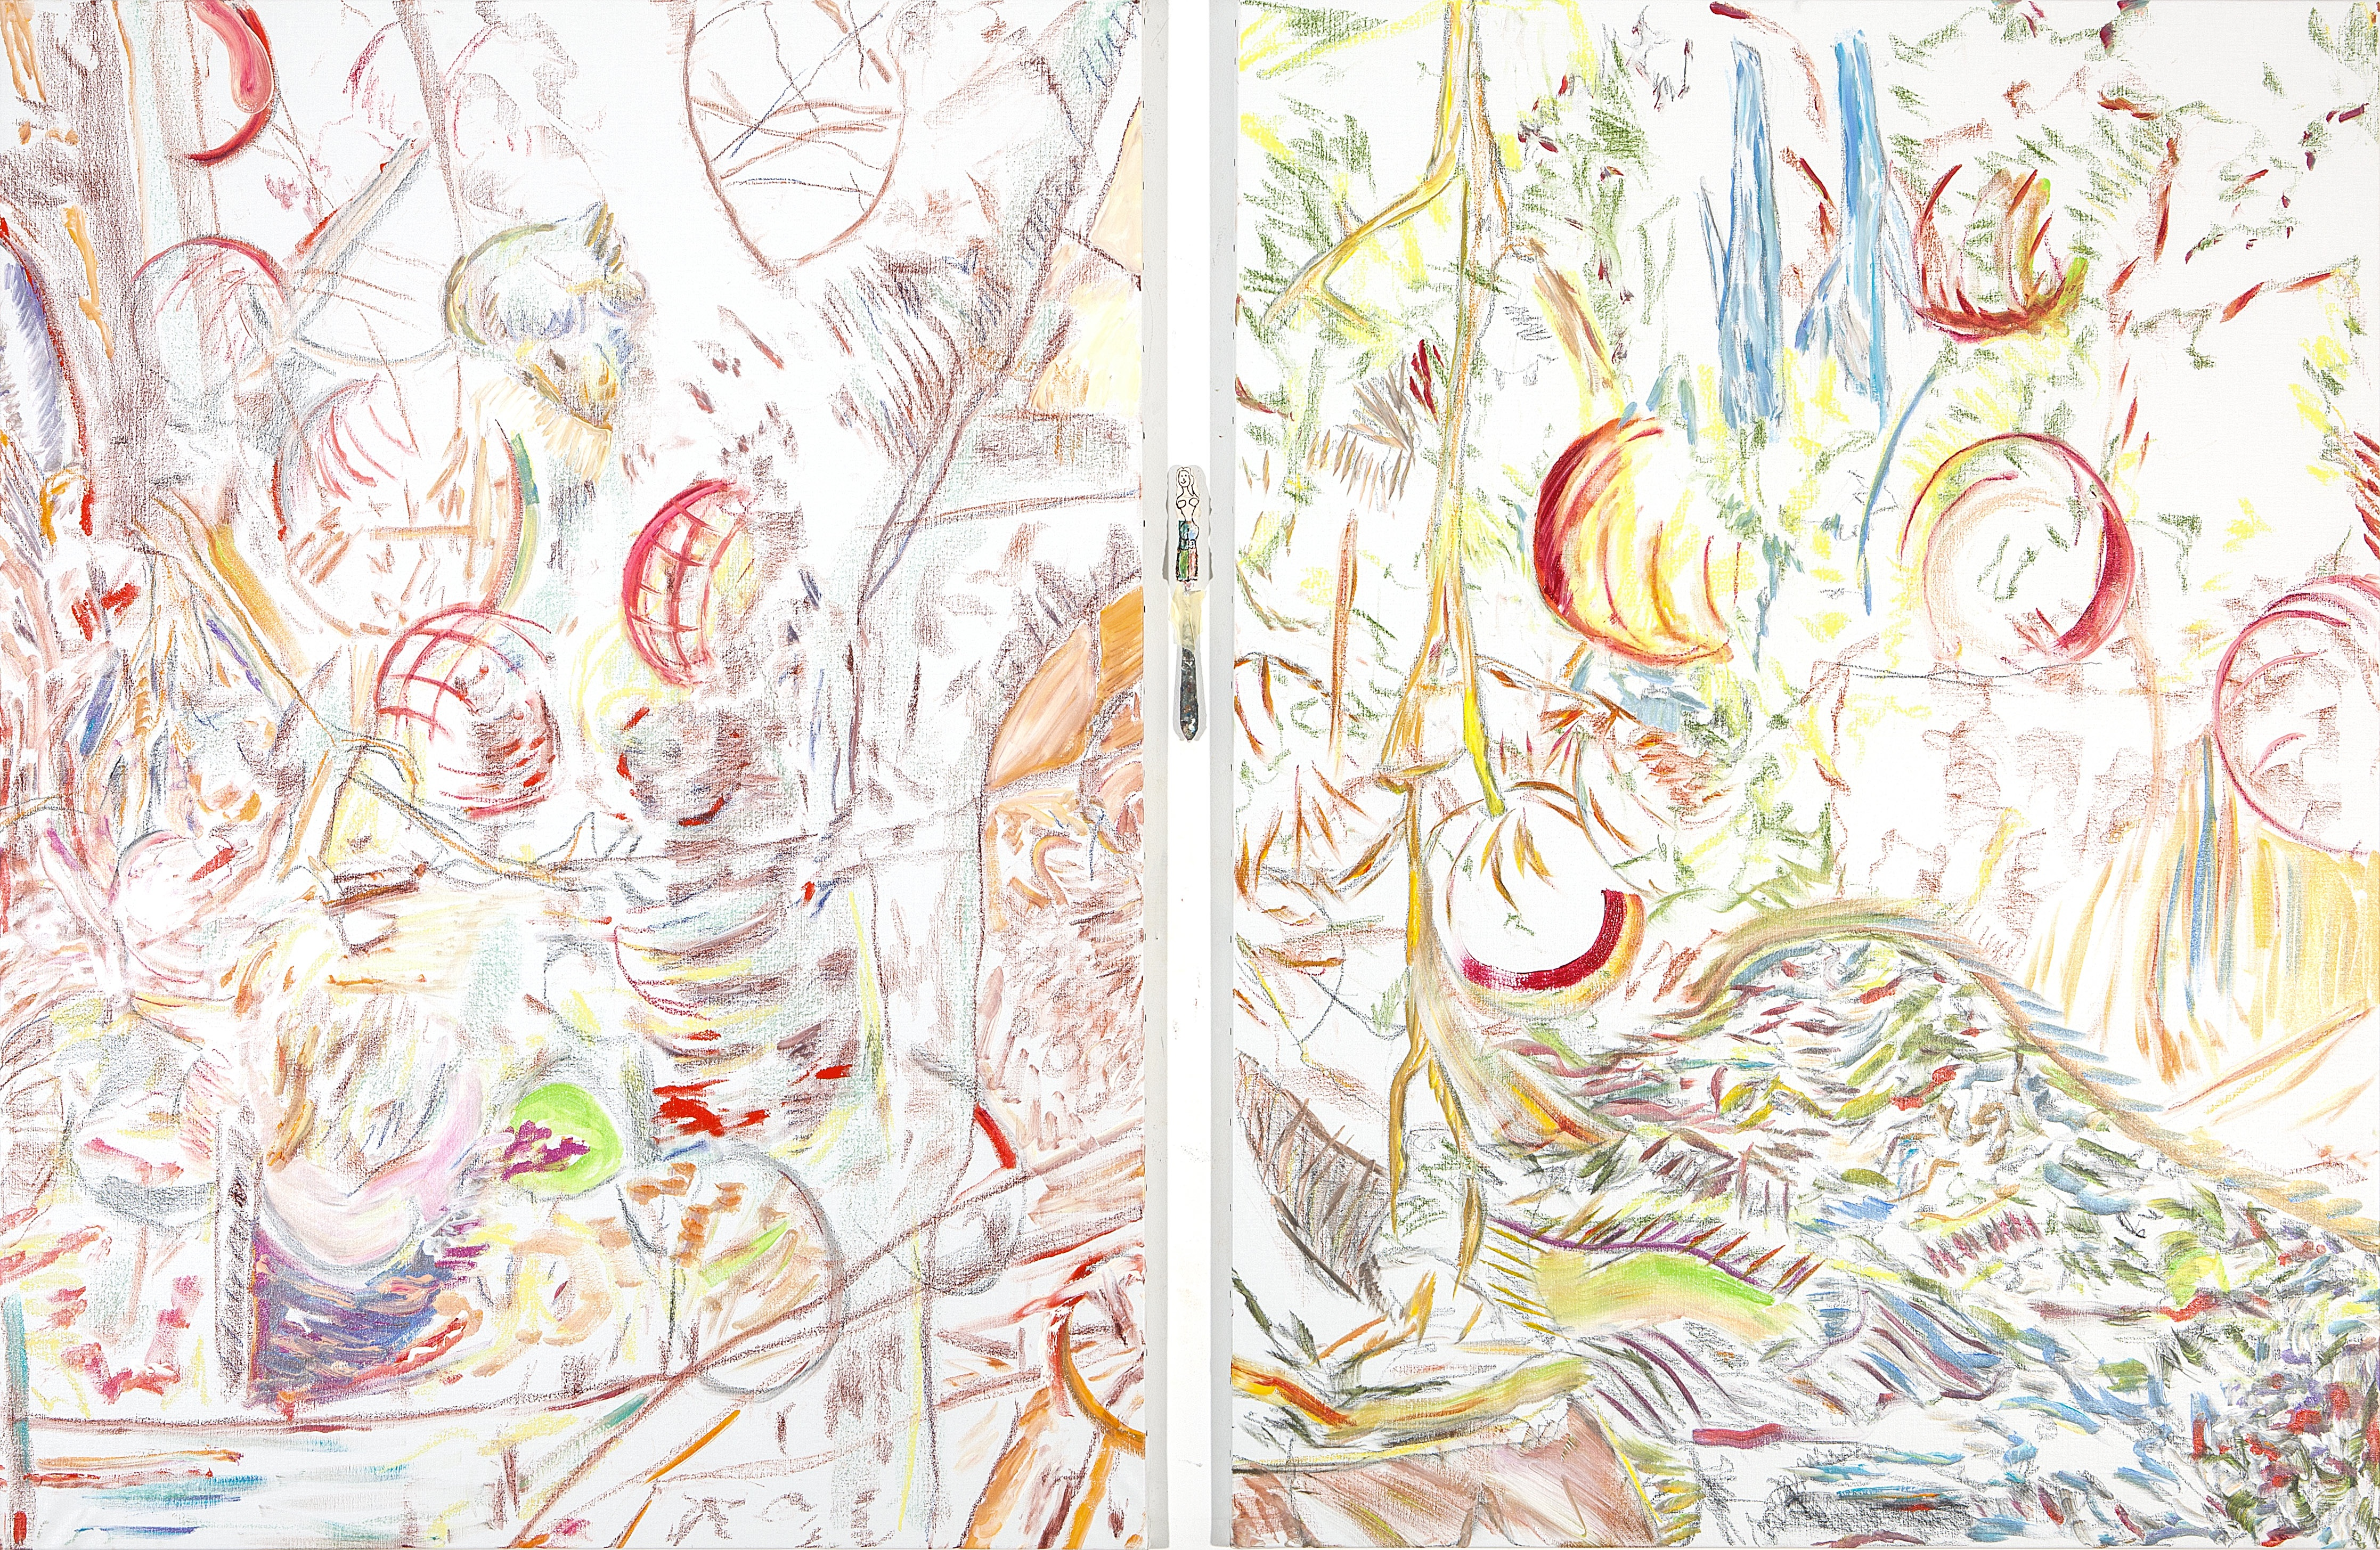 Herman'S (acrylic and mixed media, 151 x 210 cm - diptych - 2013)